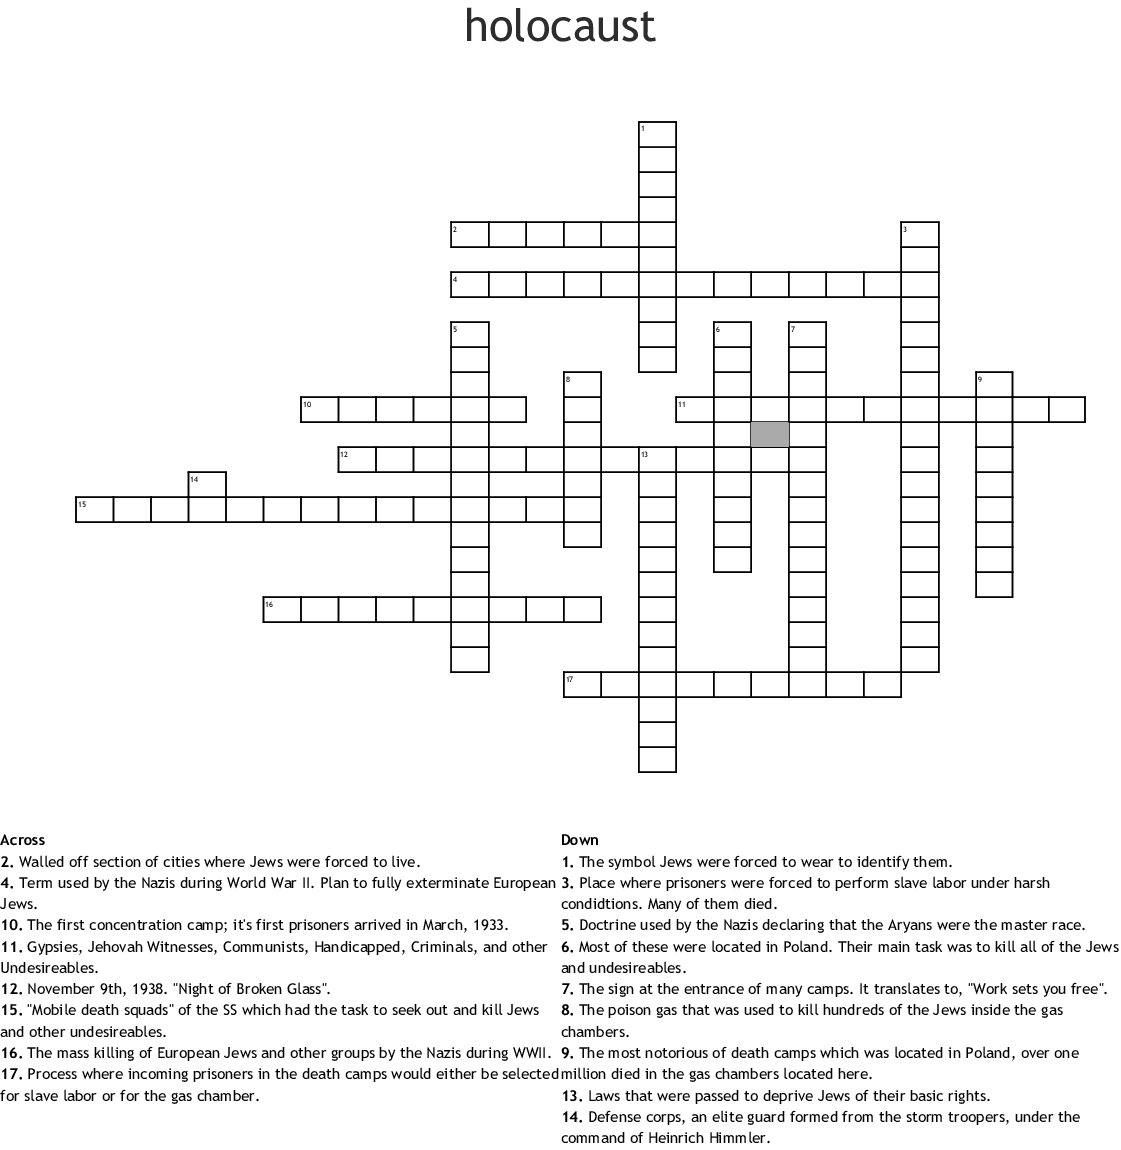 The Holocaust Word Search